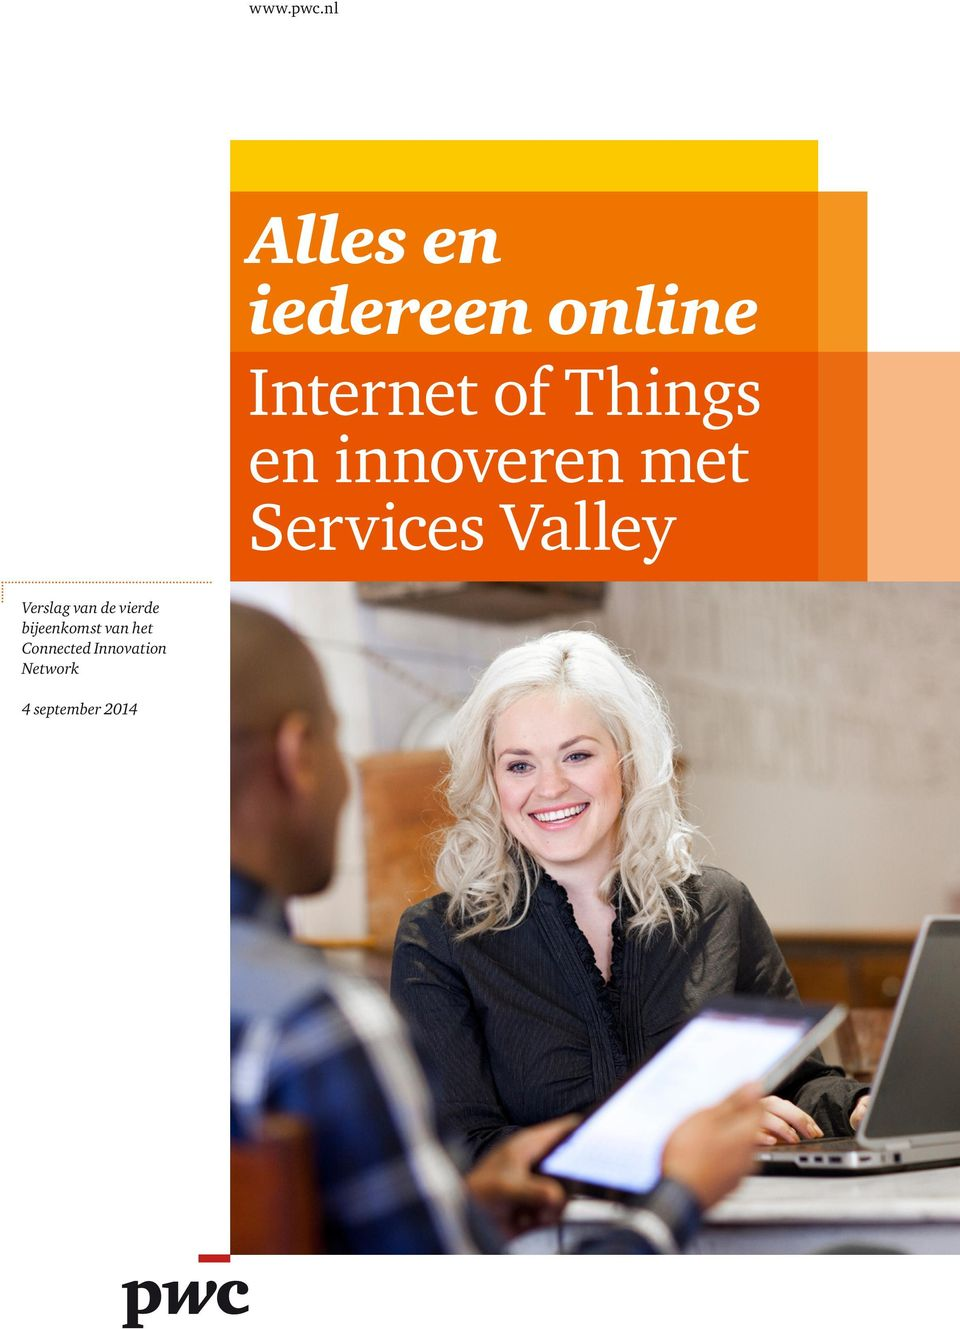 Things en innoveren met Services Valley